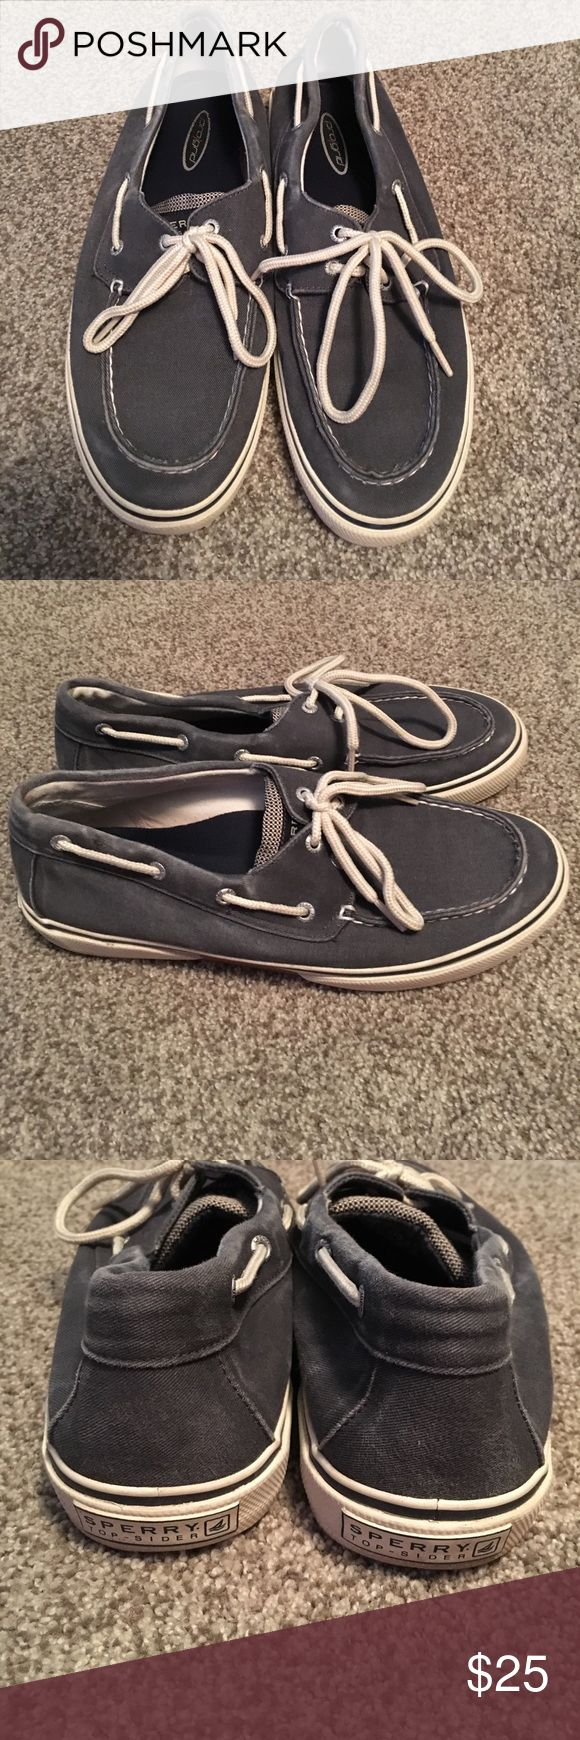 Men's Sperry Top Sider shoes Good condition lots of life left. Blue and white. Sperry Top-Sider Shoes Boat Shoes